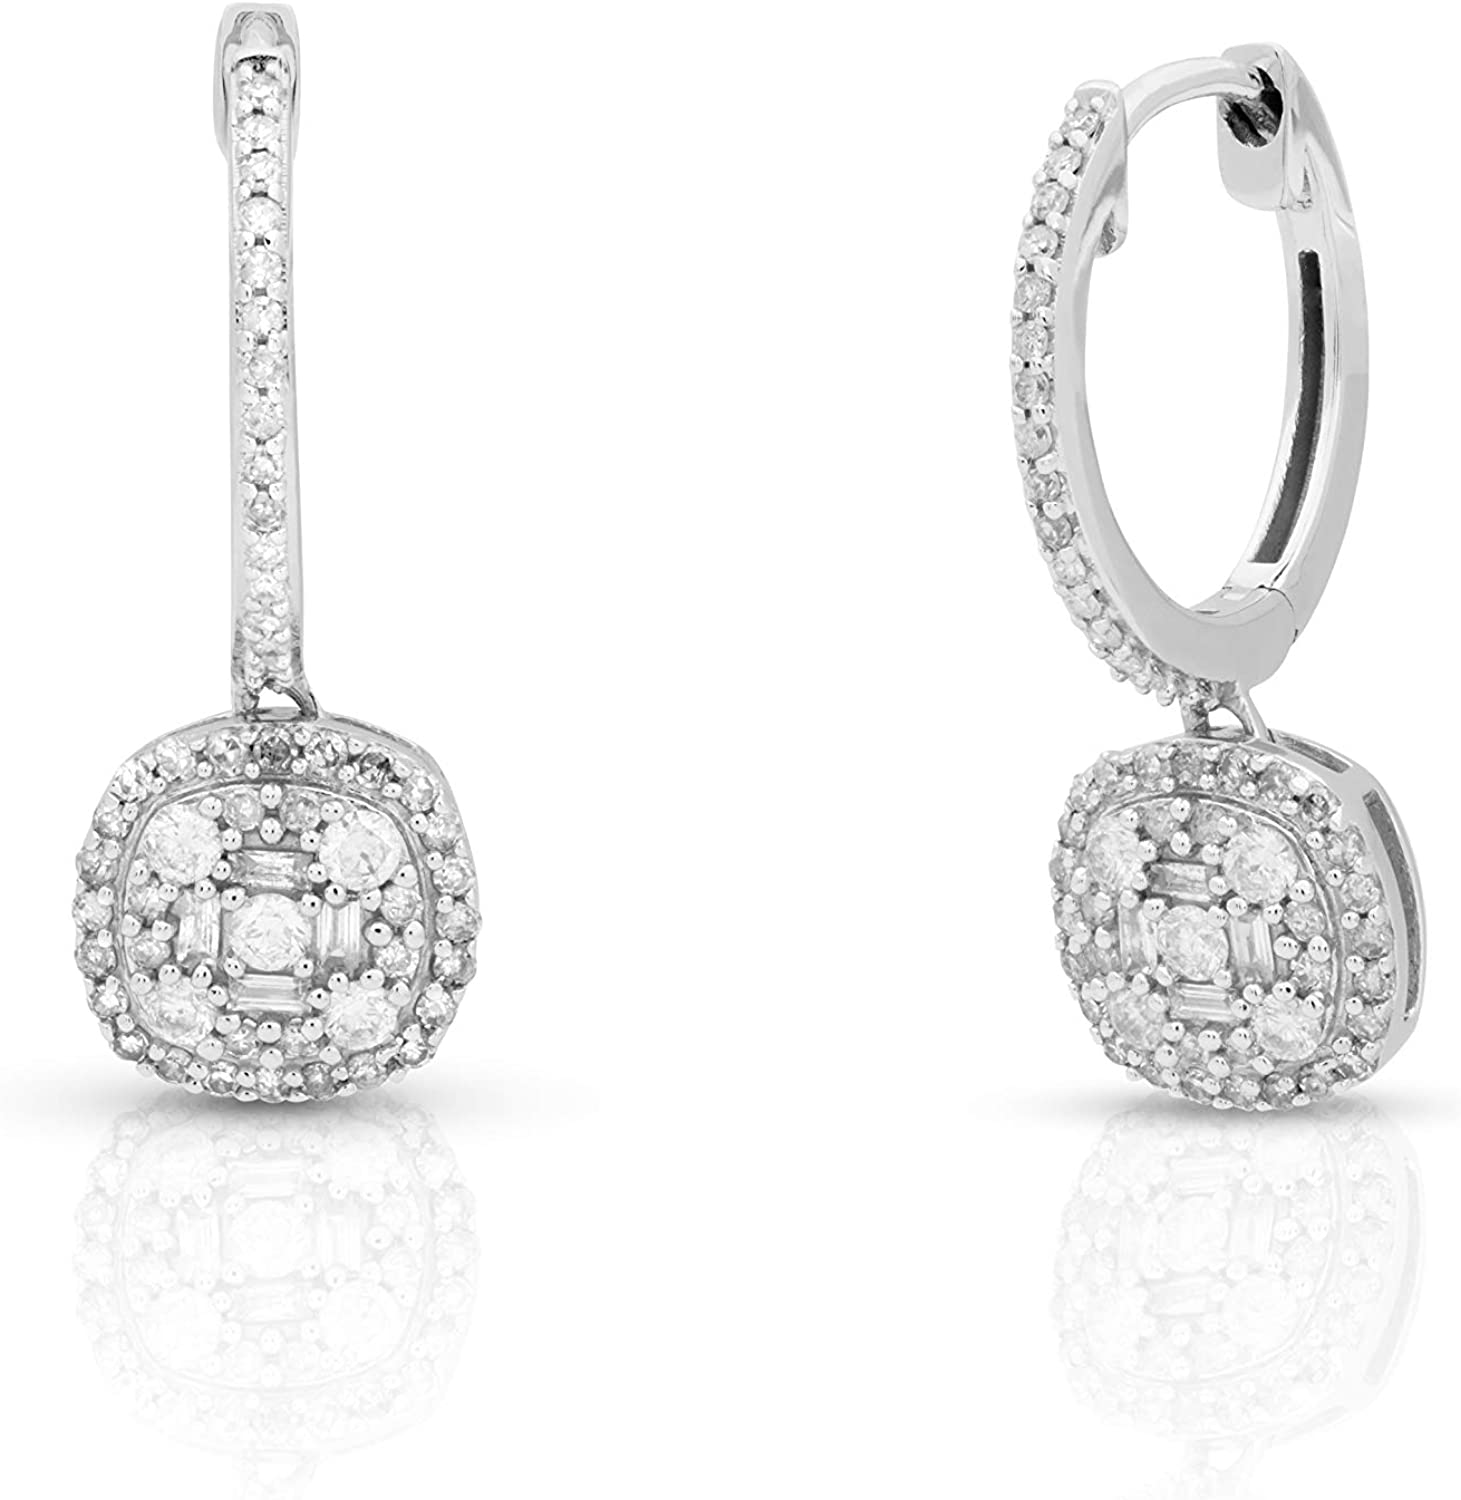 Femme Luxe 0.50 Today's only New Shipping Free Shipping cttw Diamond Drop White for 14K Women Earrings